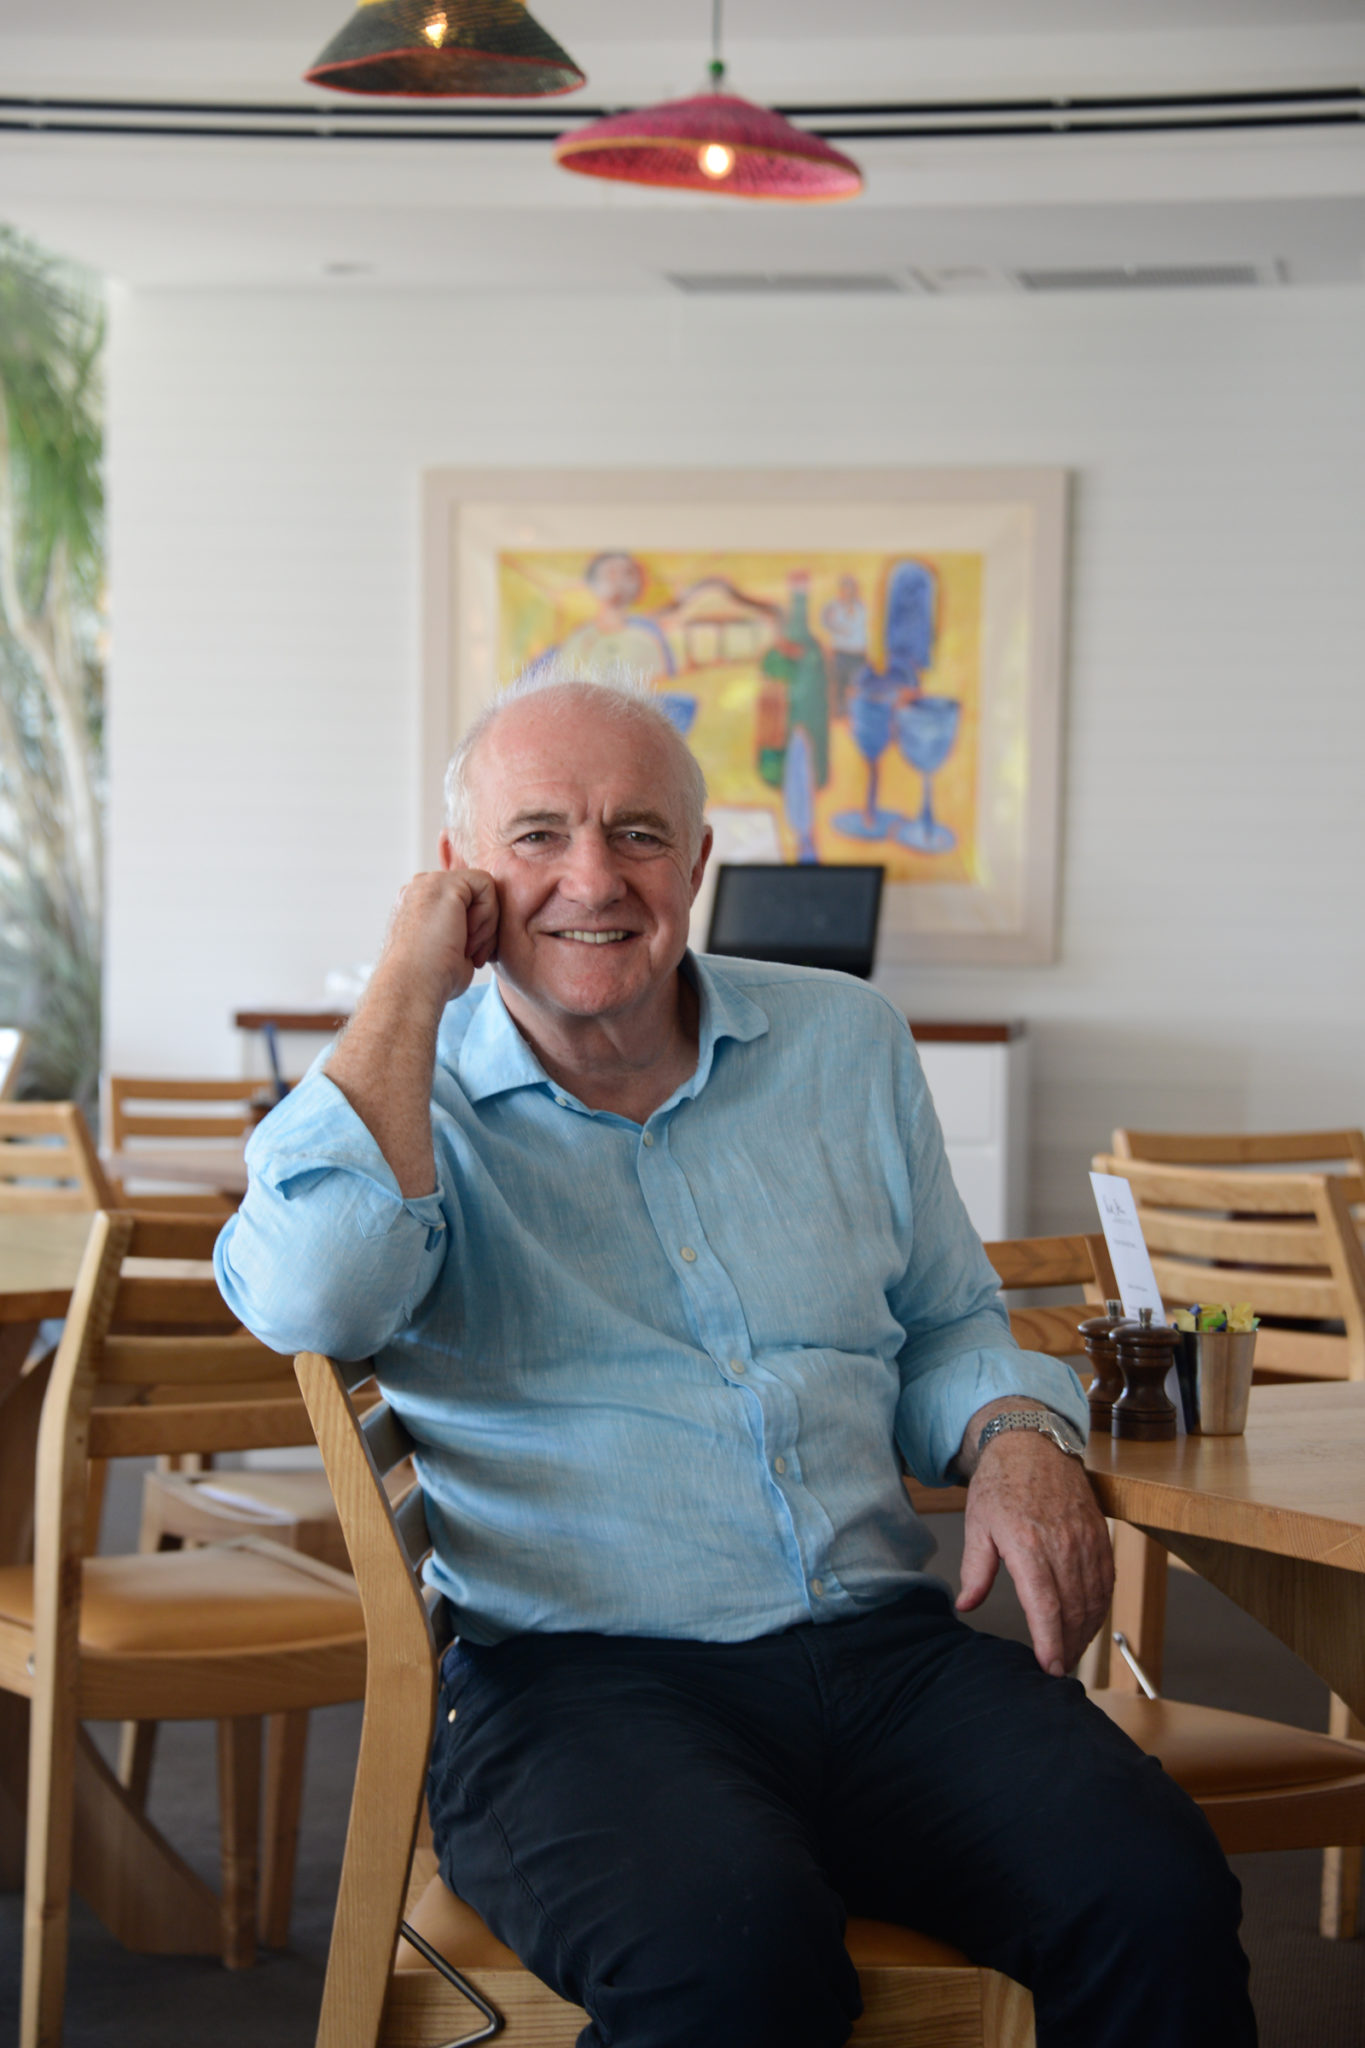 Rick Stein at Bannisters